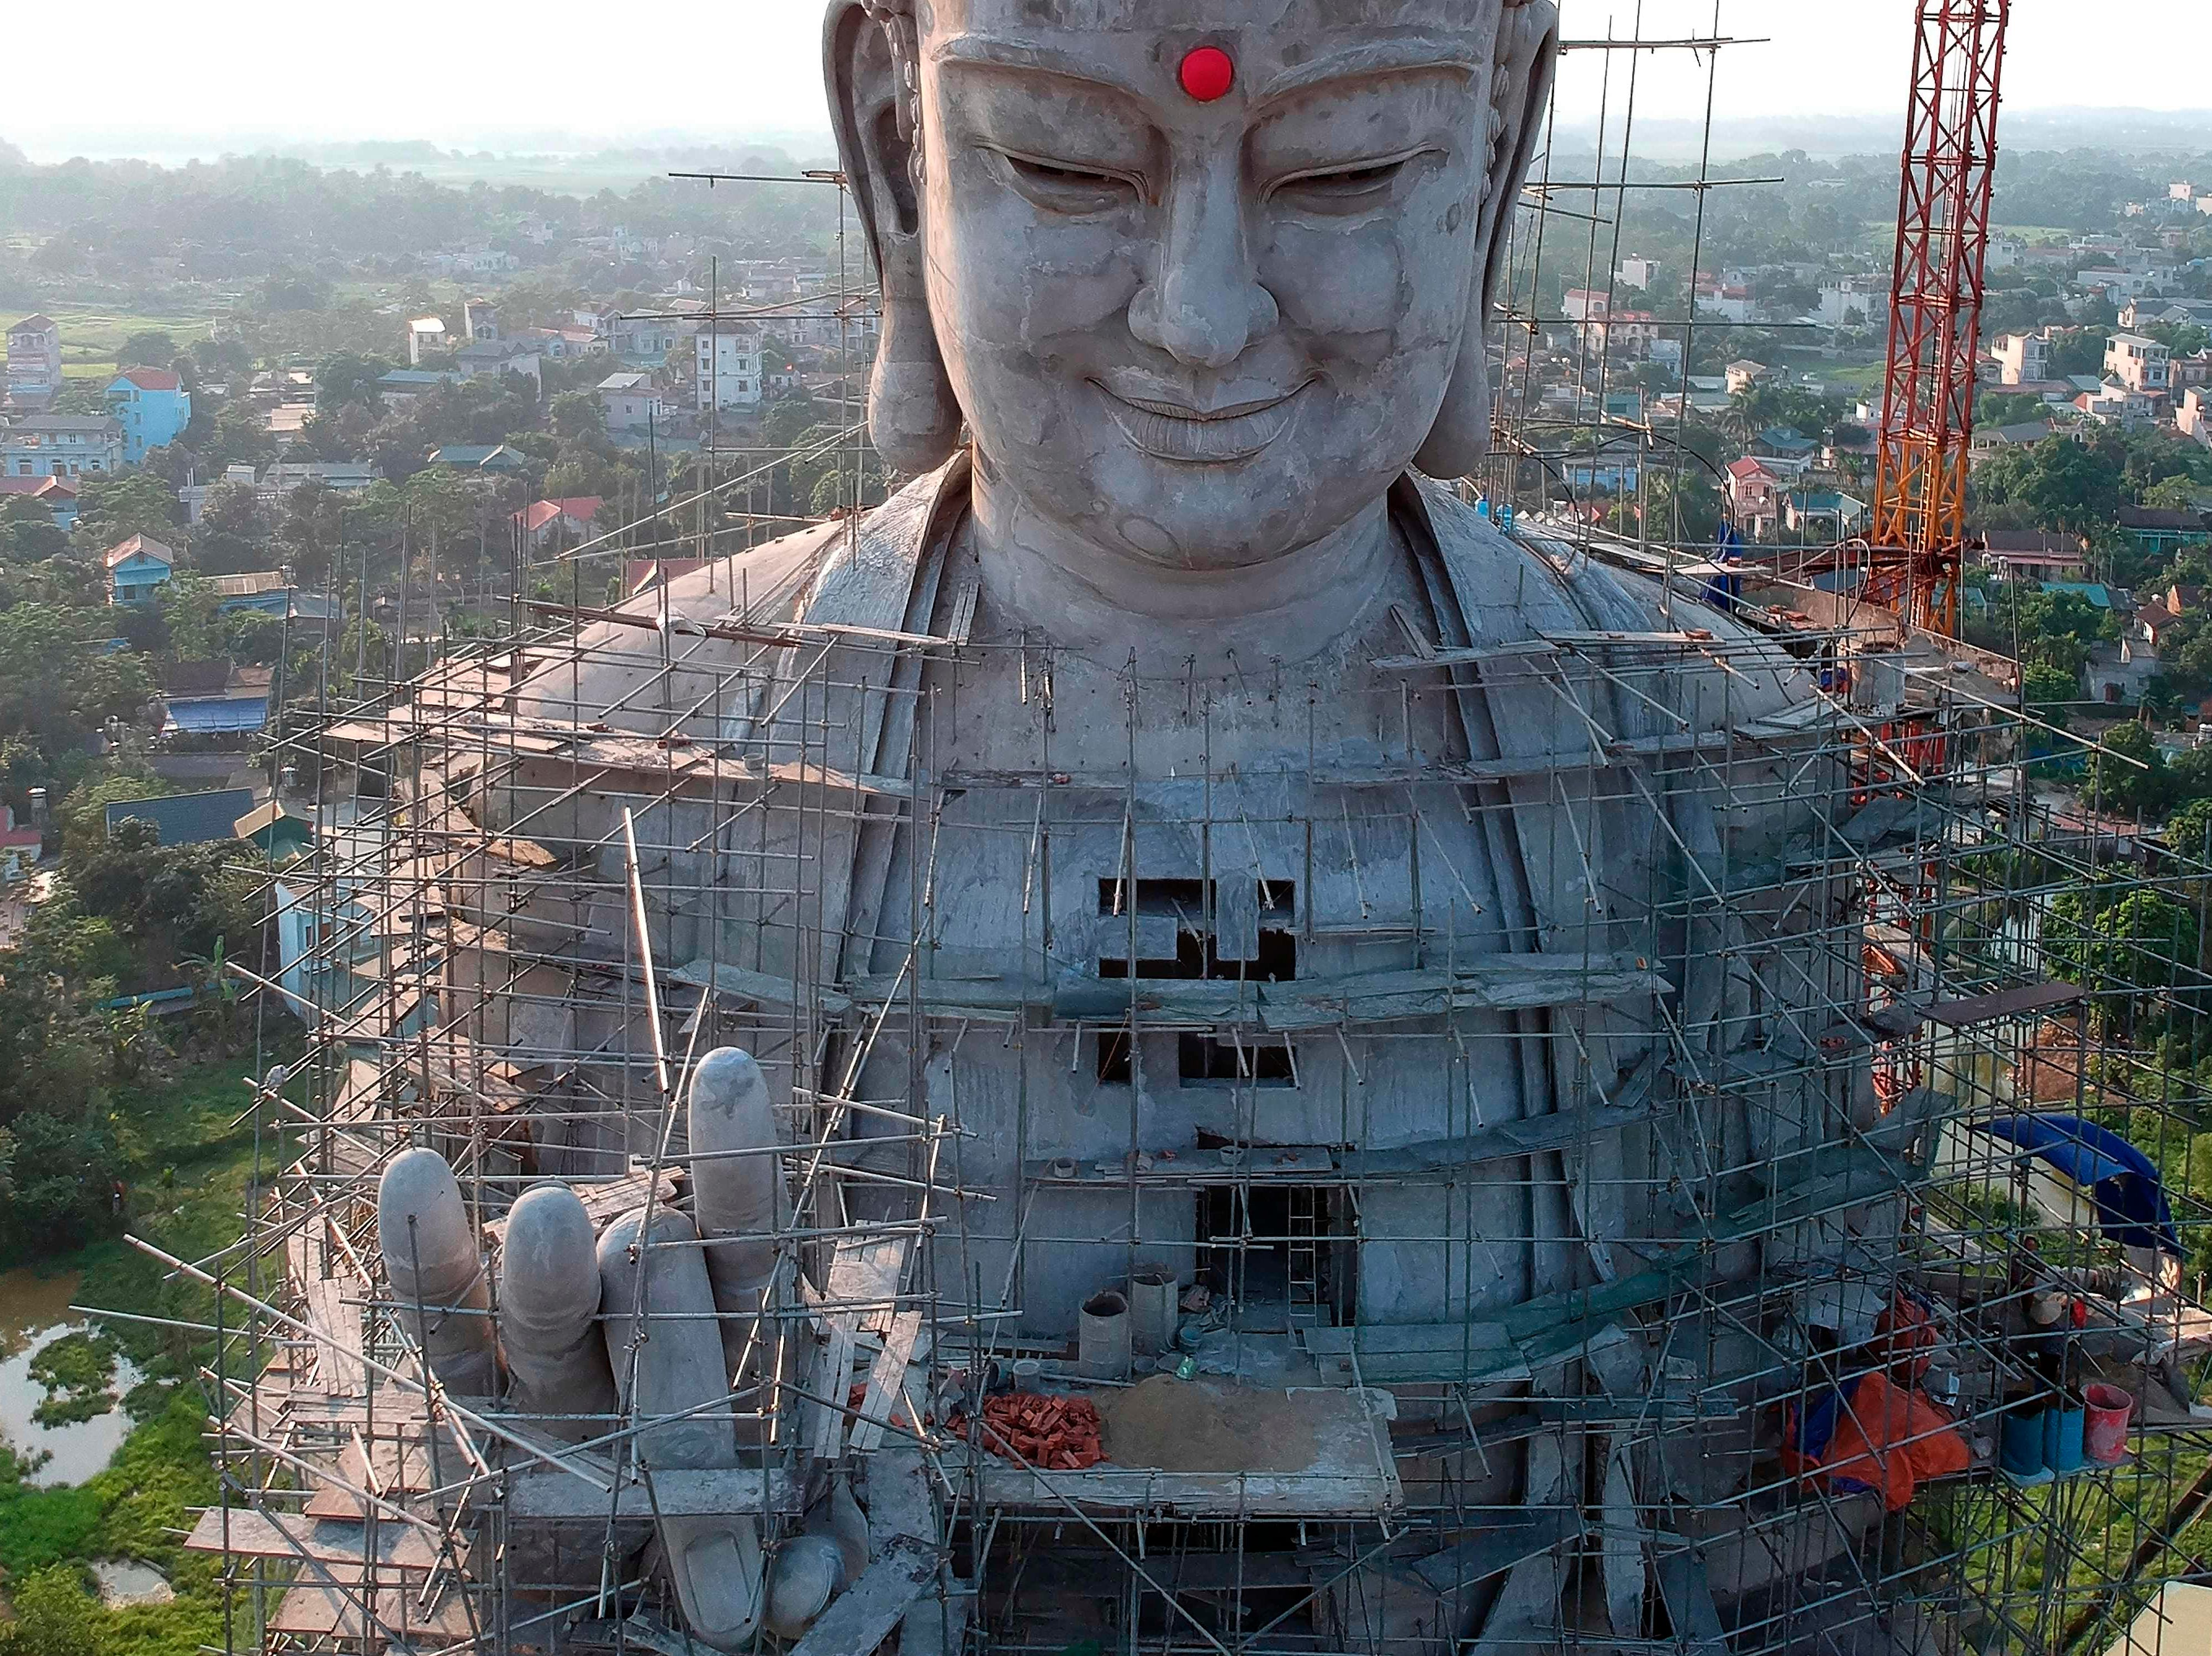 This aerial photograph shows a giant under-construction Buddha statue at Khai Nguyen pagoda in Son Tay on the outskirts of Hanoi on May 18, 2019 on the eve of Vesak day or Buddha day festival, marking the birth of Gautama Buddha, his attaining enlightenment, and his passing away.